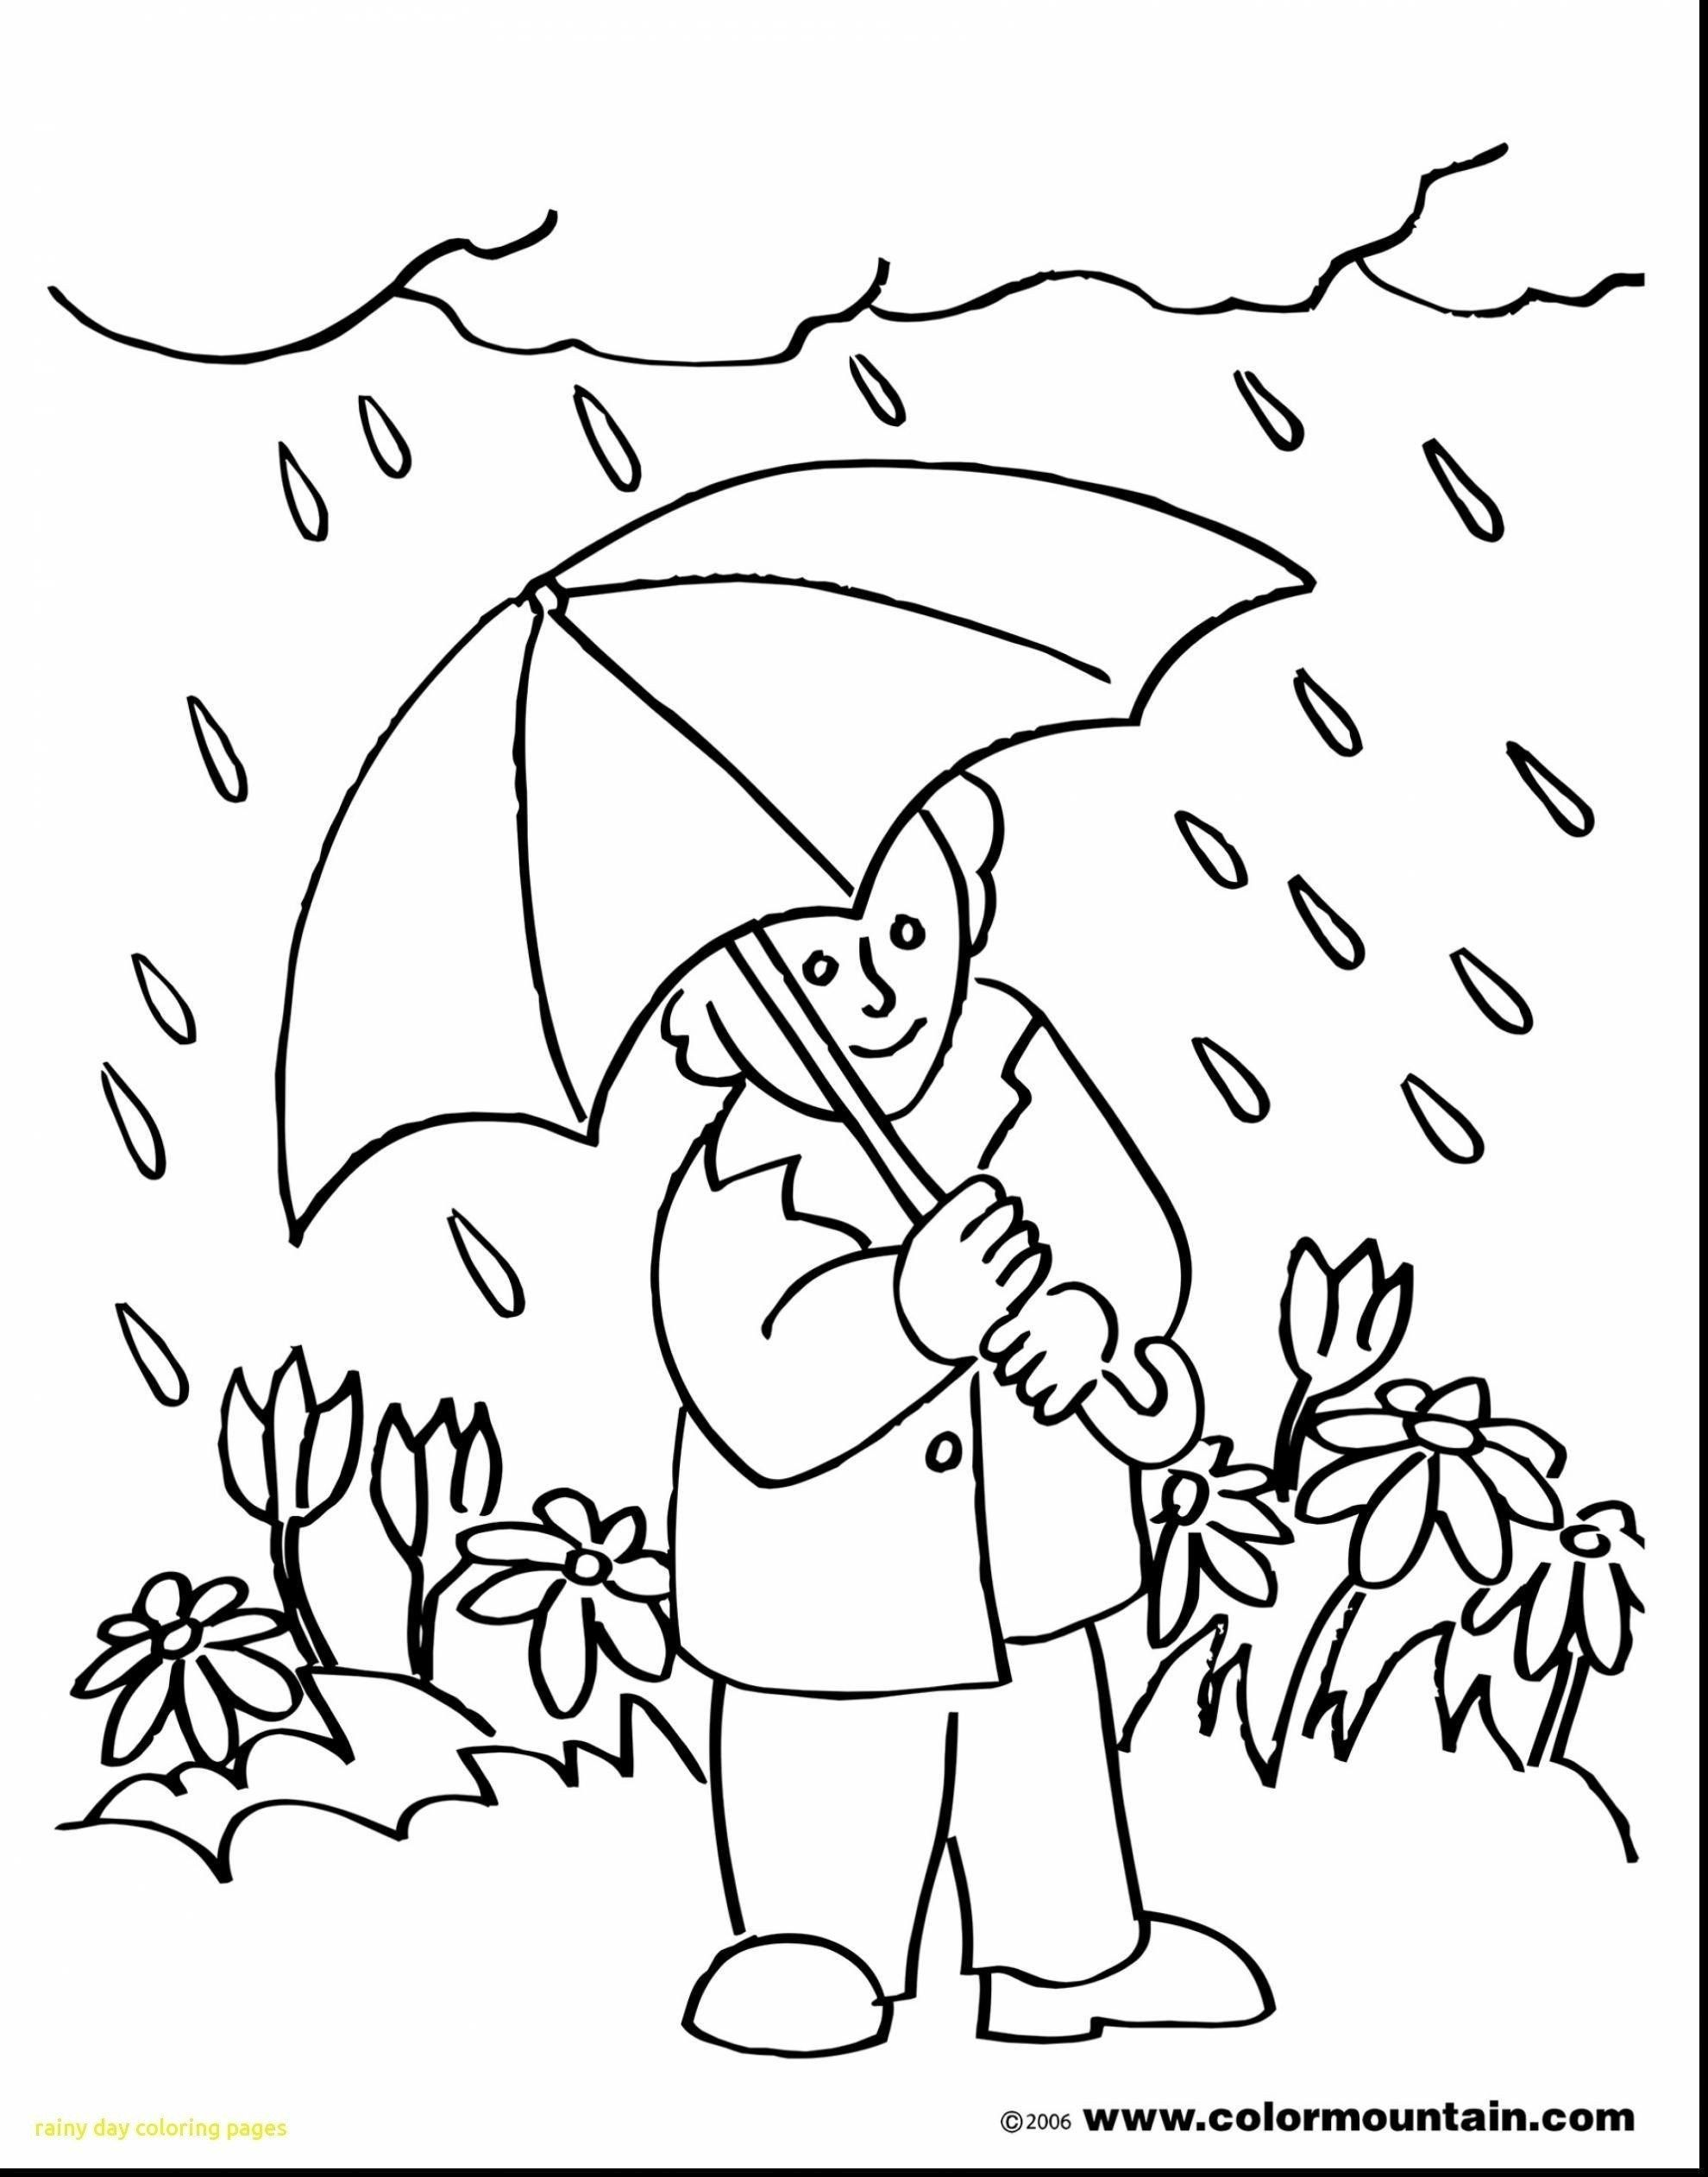 Rainy Day Coloring Sheets 25 Wonderful Picture Of Rainy Day Coloring Pages In 2020 Witch Coloring Pages Coloring Pages Fall Coloring Pages